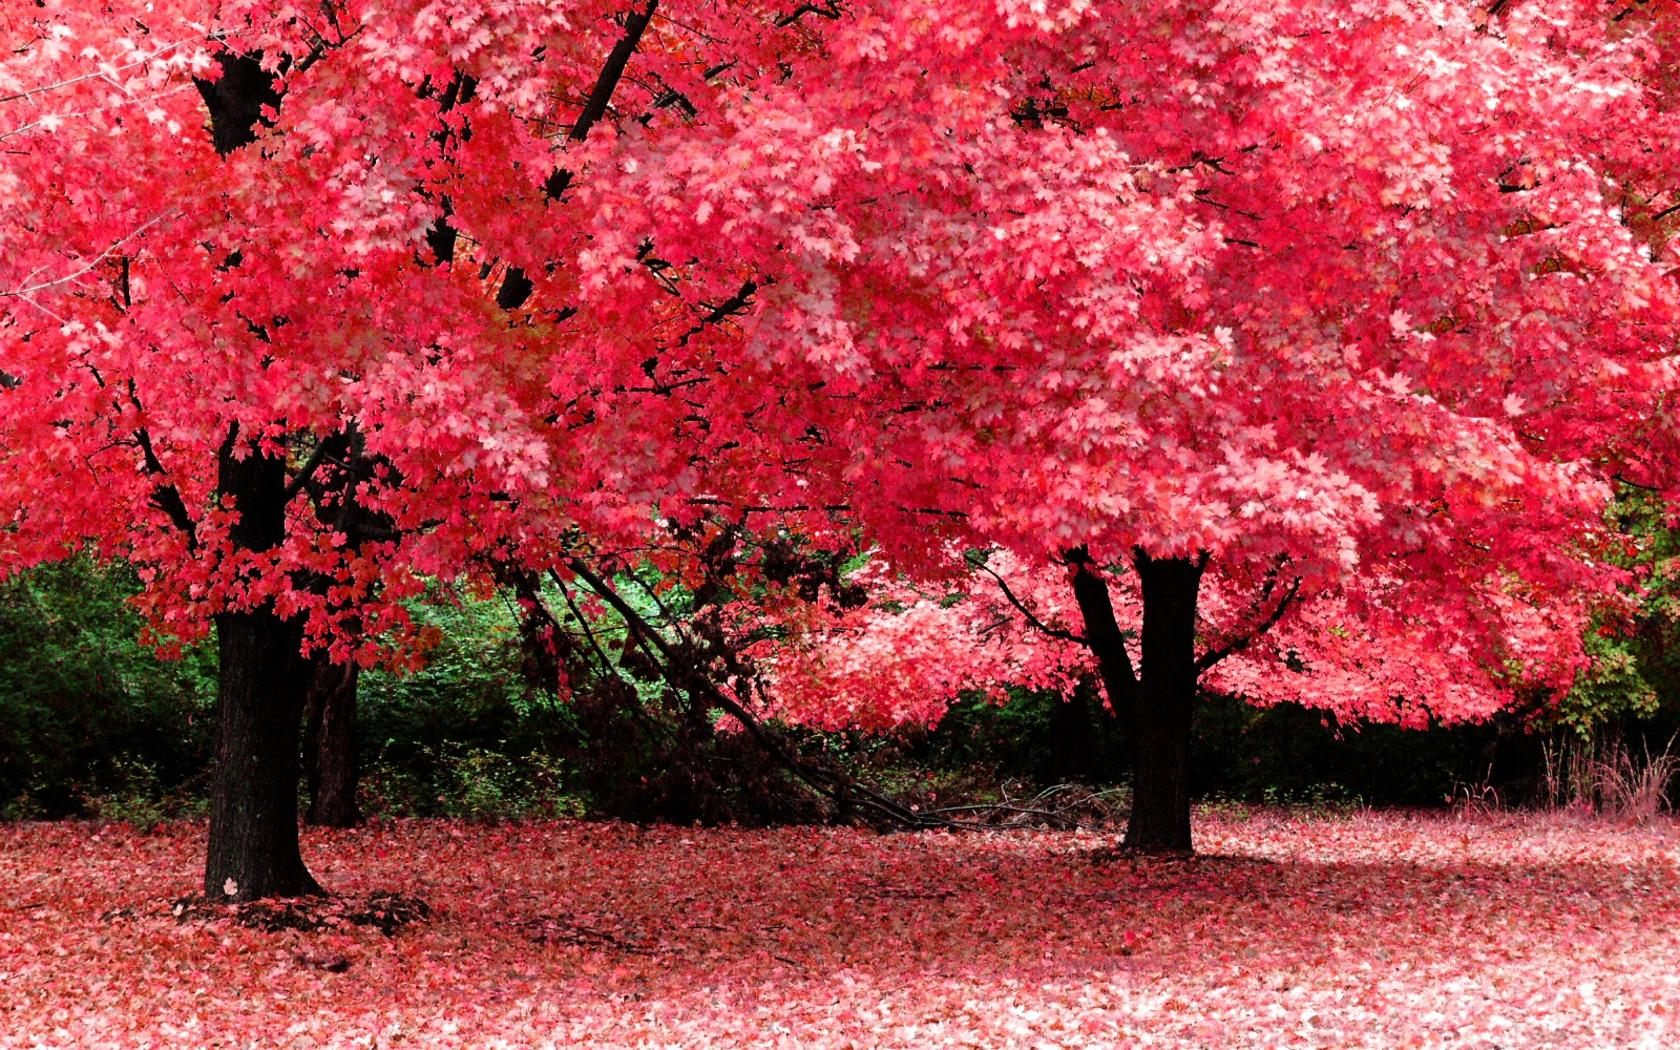 Wallpaper Nature, Red and Pink Trees 369.81 Kb